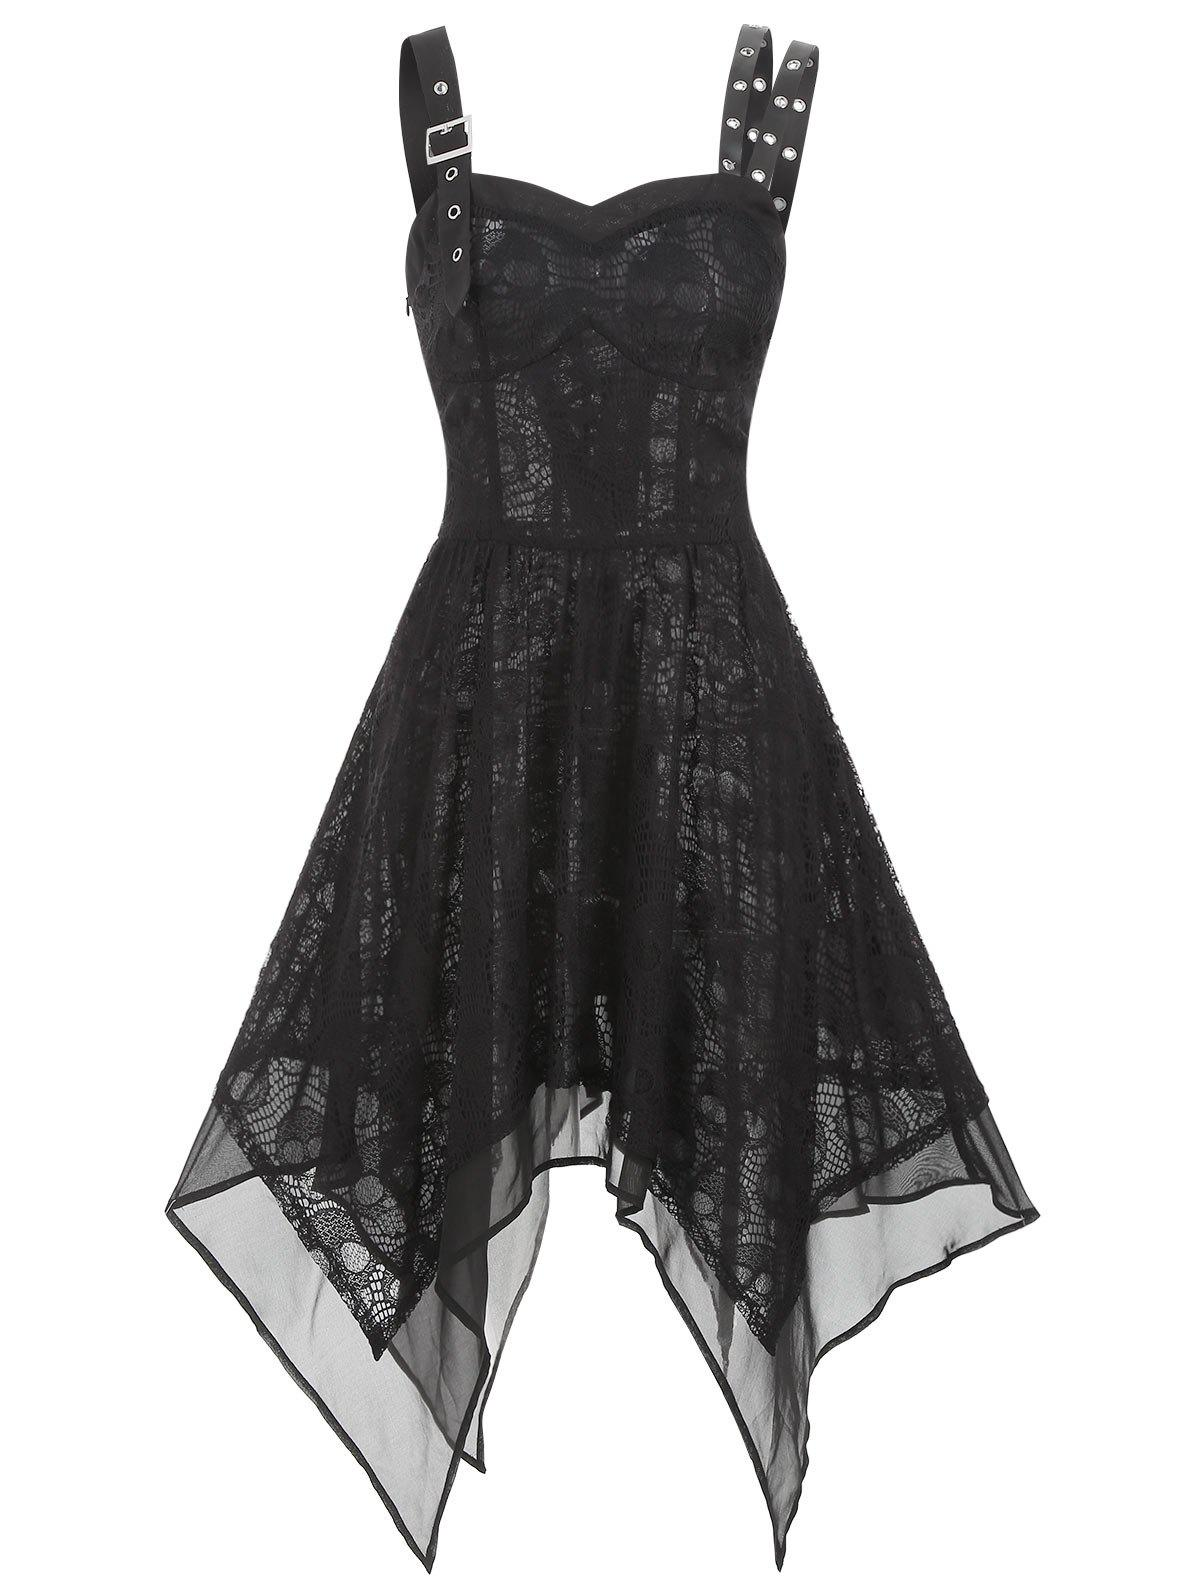 Trendy Lace Buckle Grommet Asymmetrical Handkerchief Dress